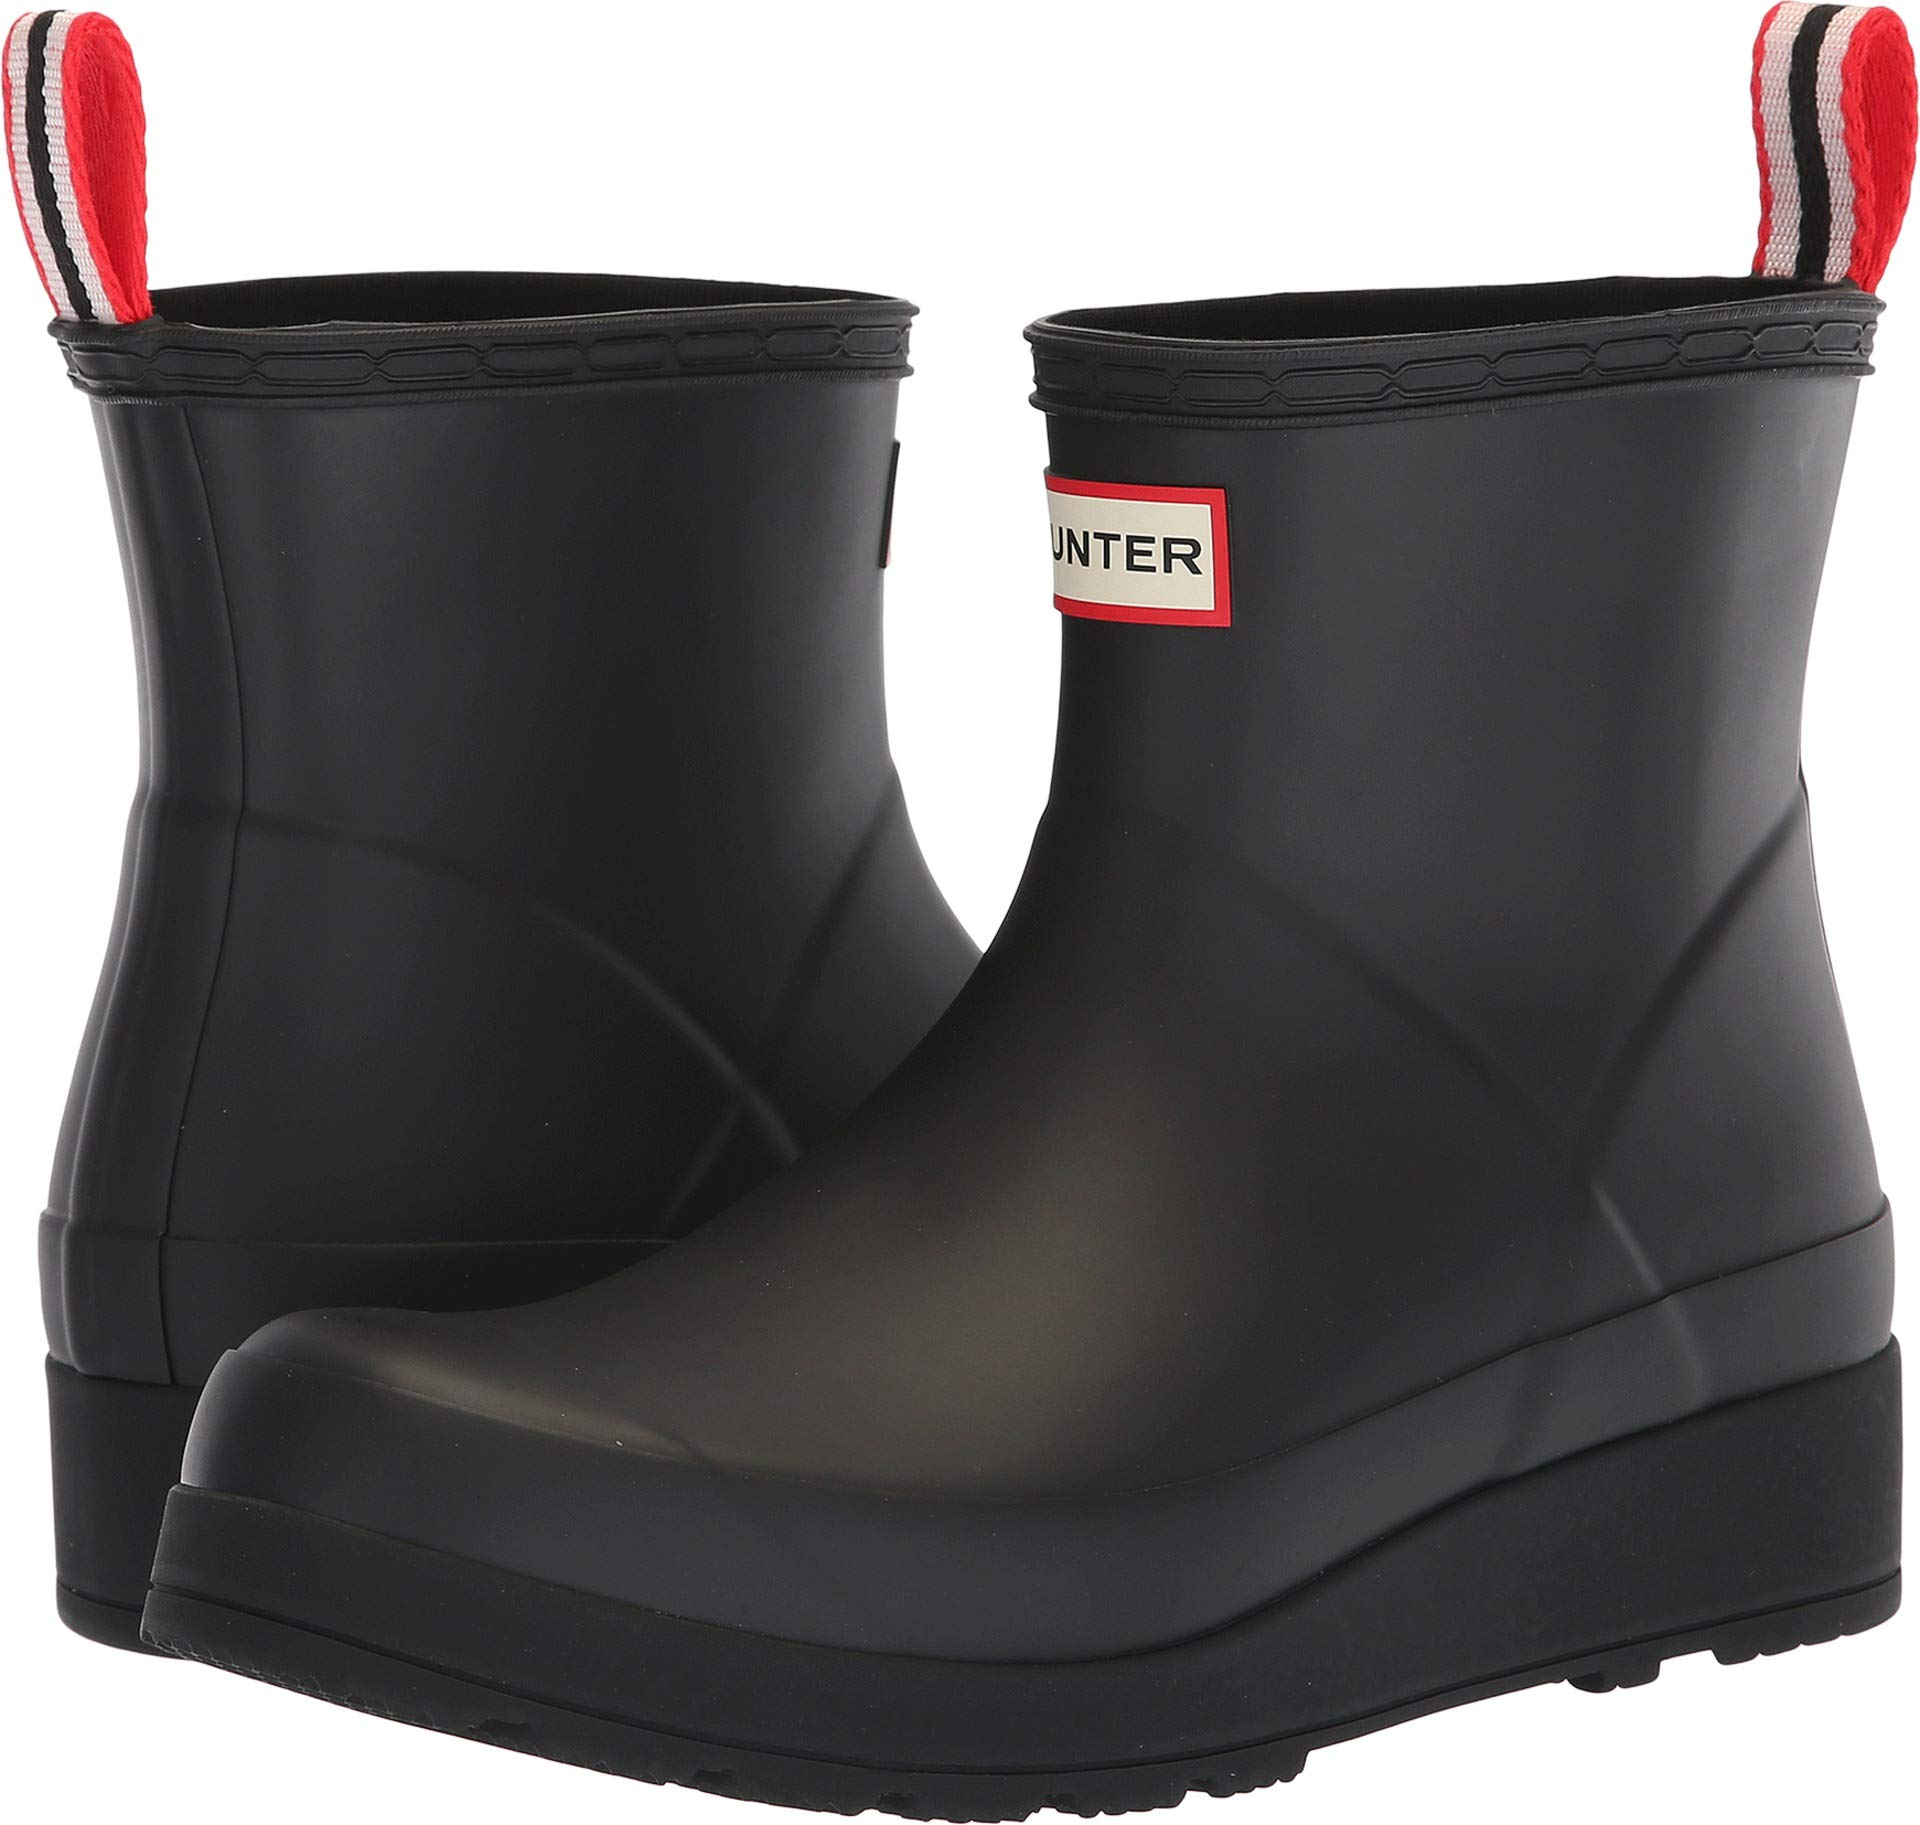 Hunter Women's Original Play Boot Short Rain Boots Black 9 M US